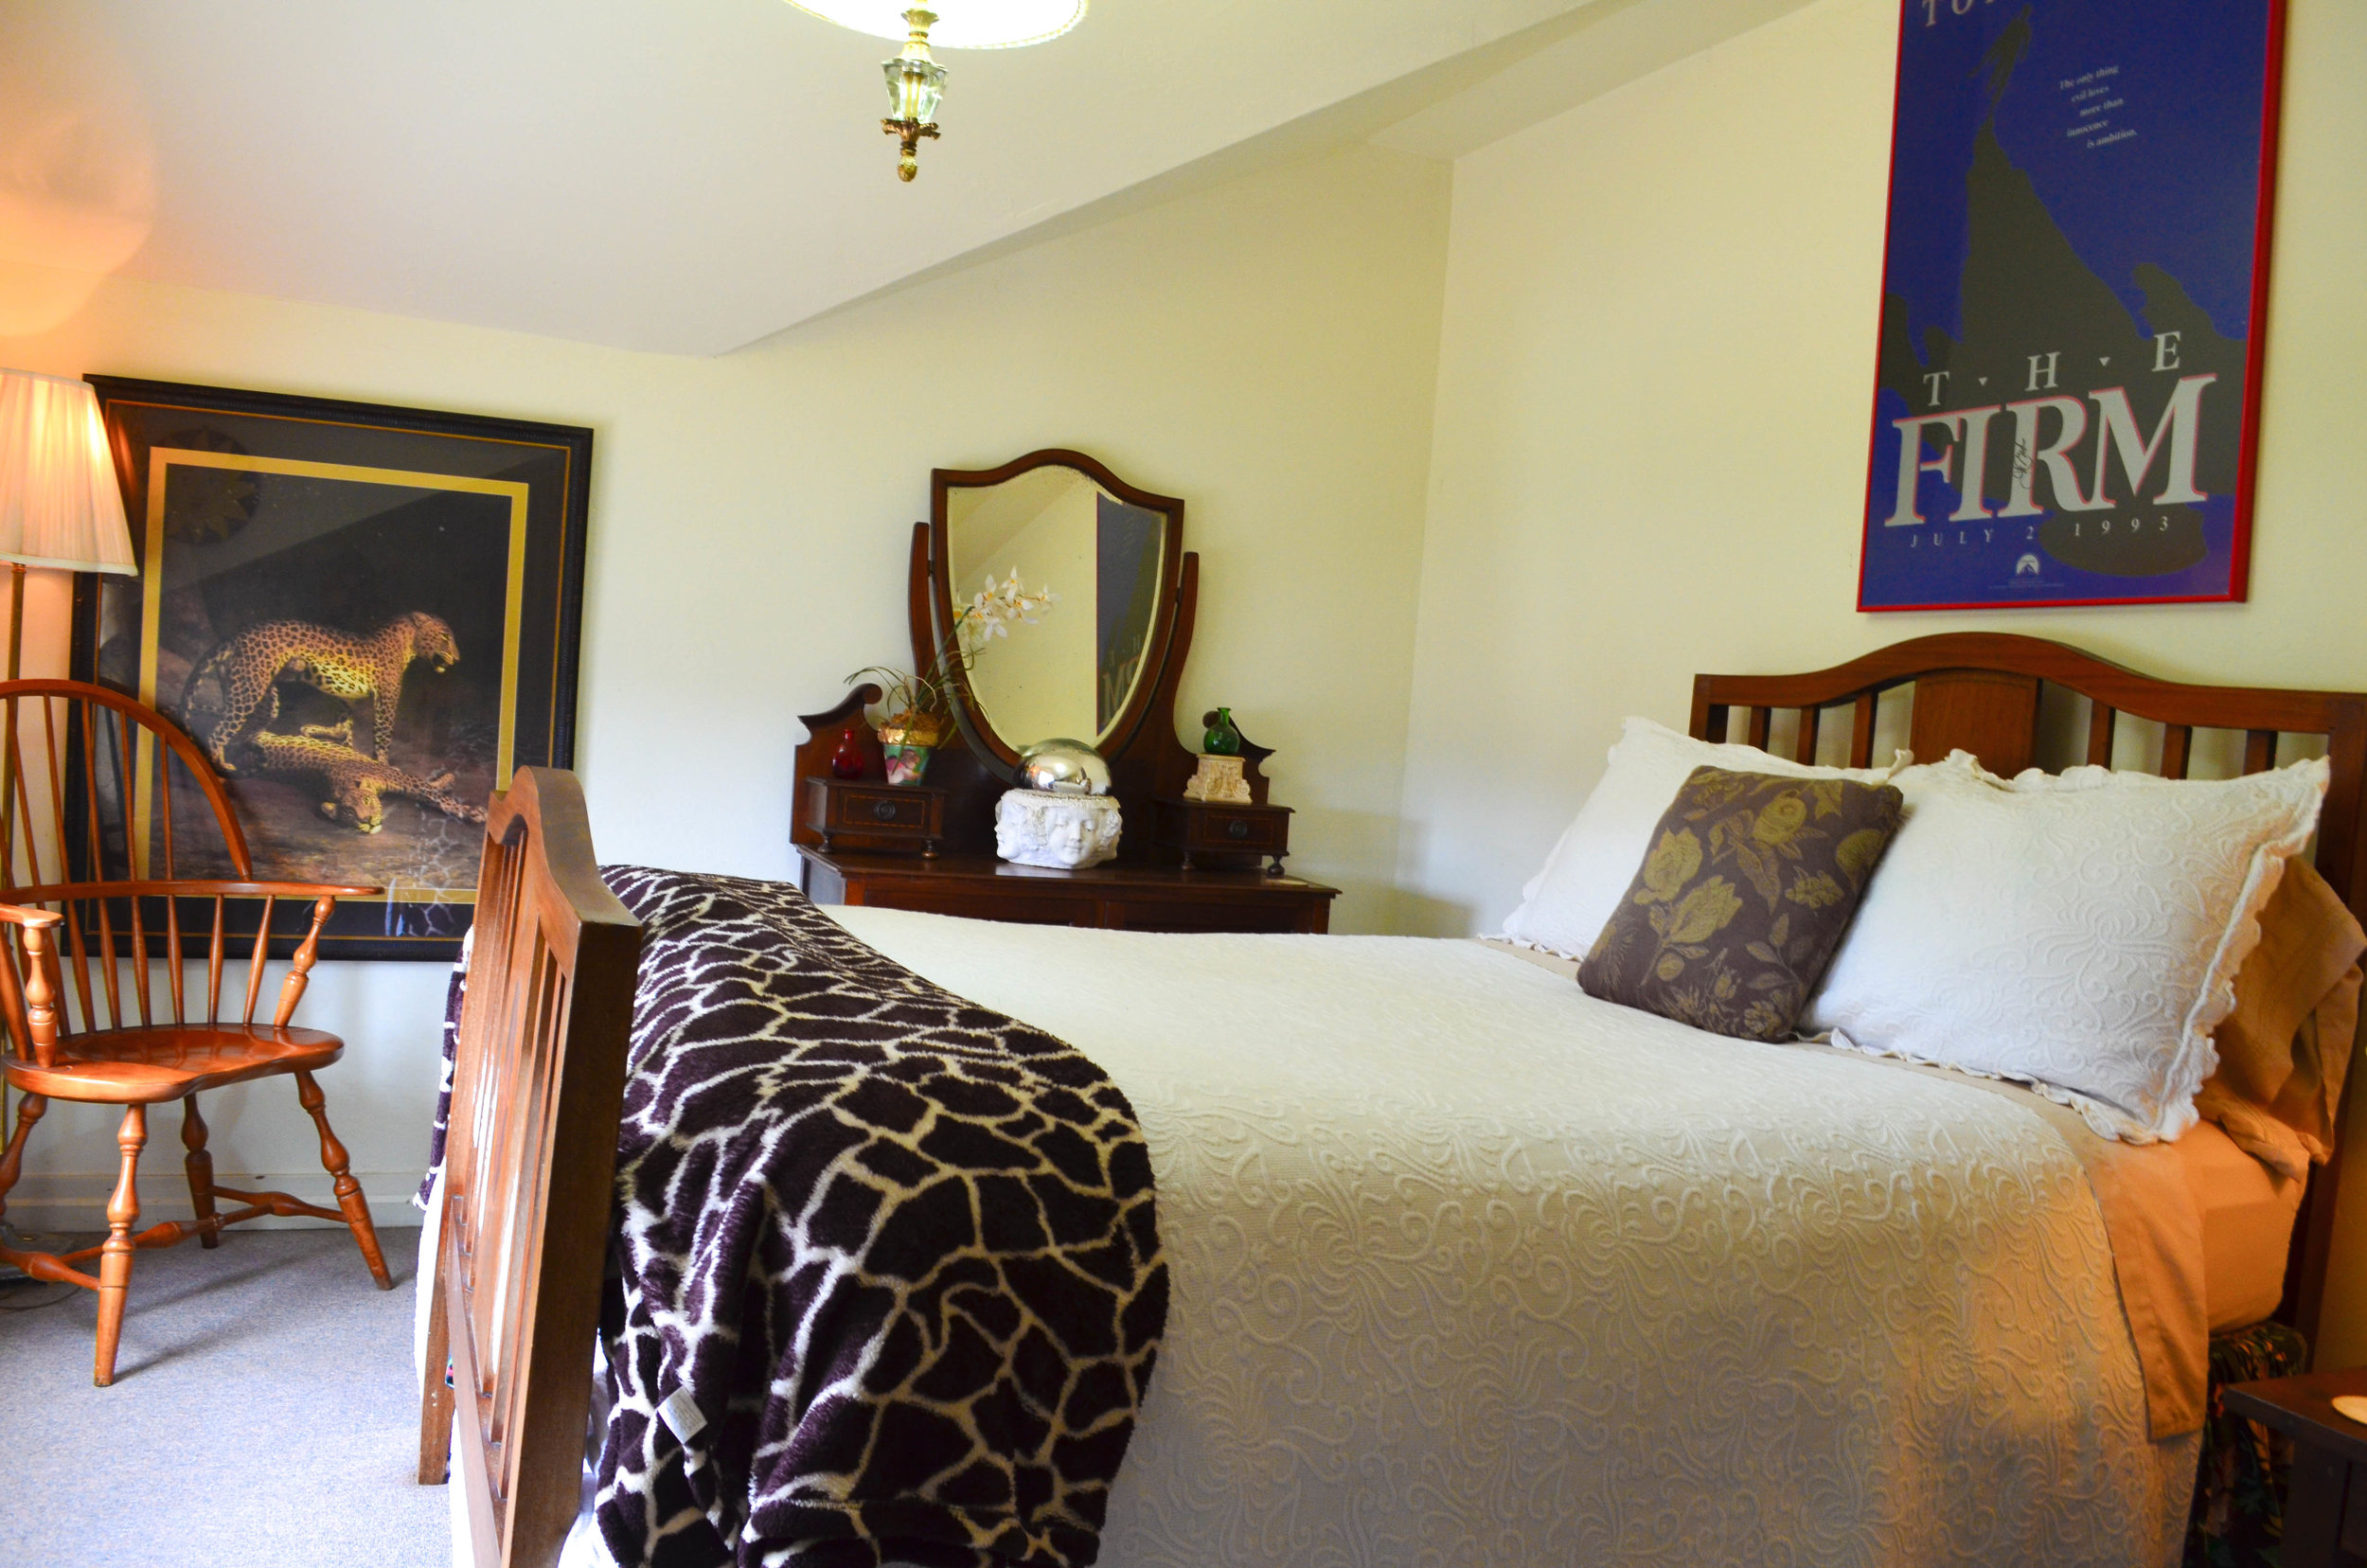 the bedroom in the Carriage House at B. Bryan Perserve in Point Arena, CA